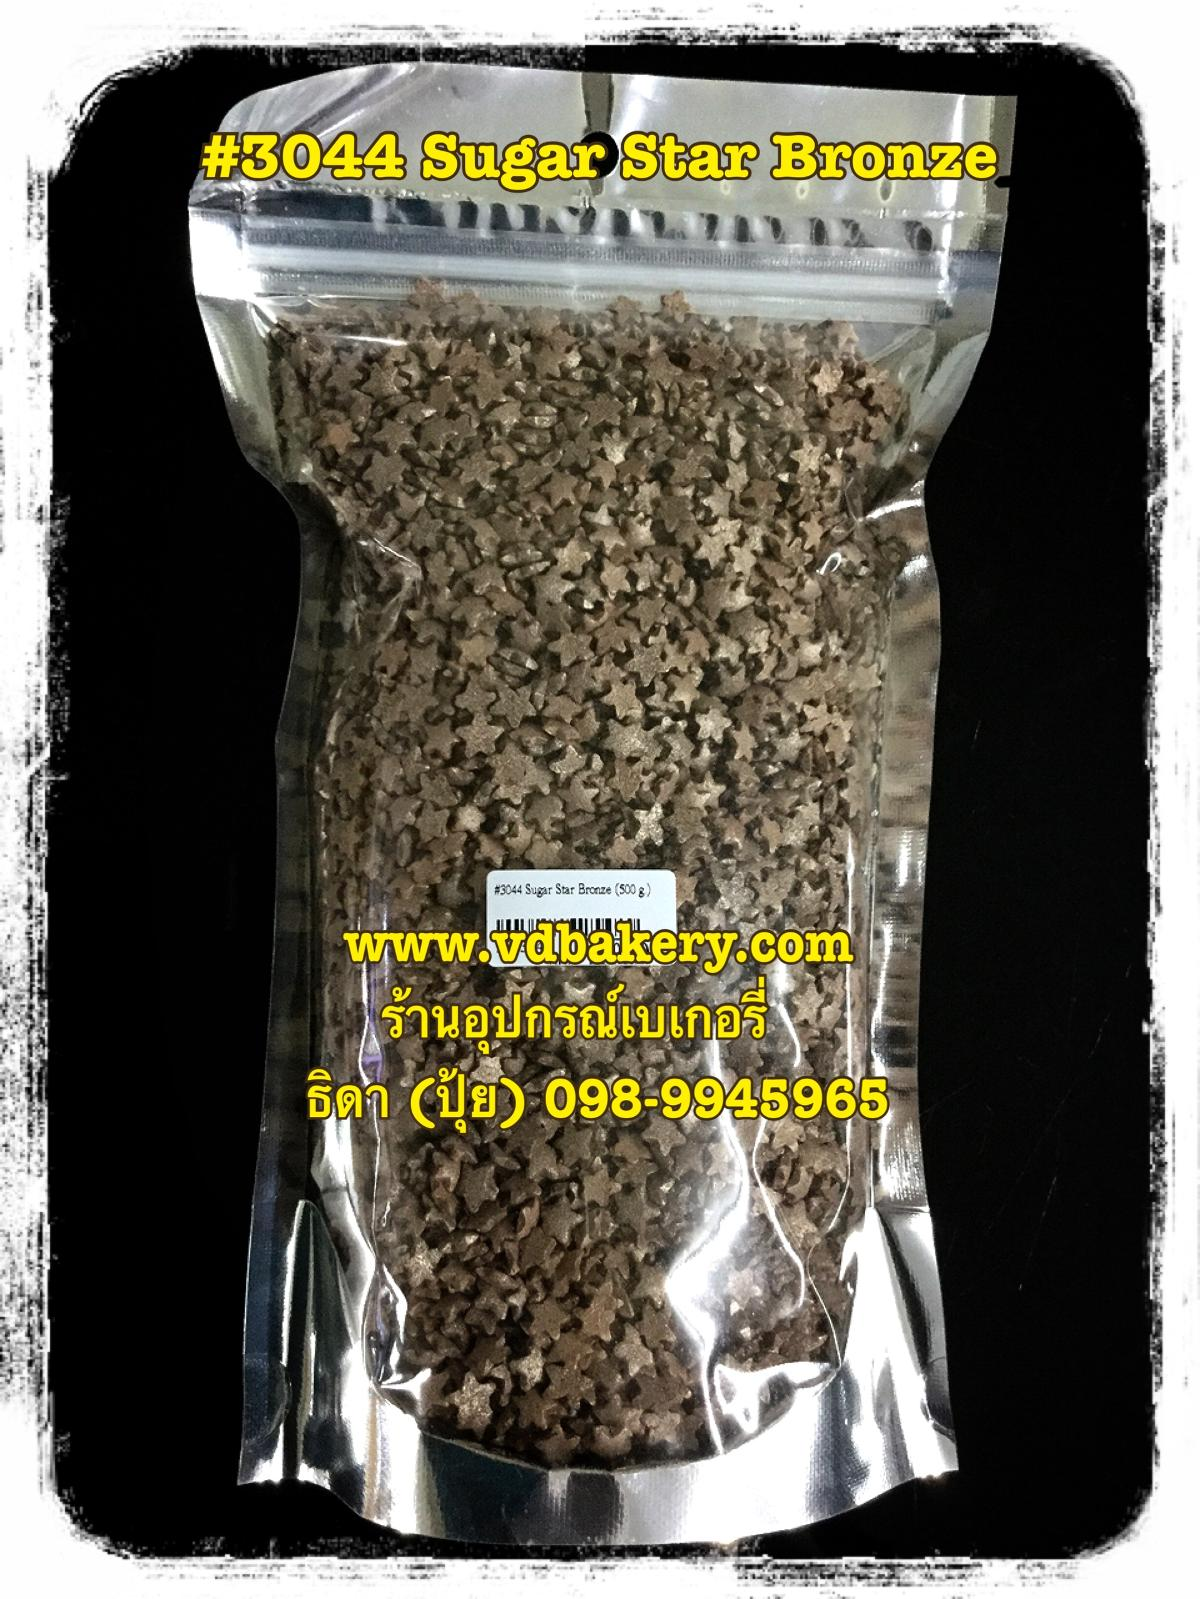 (5813044) Sugar Star Bronze (500 g.)